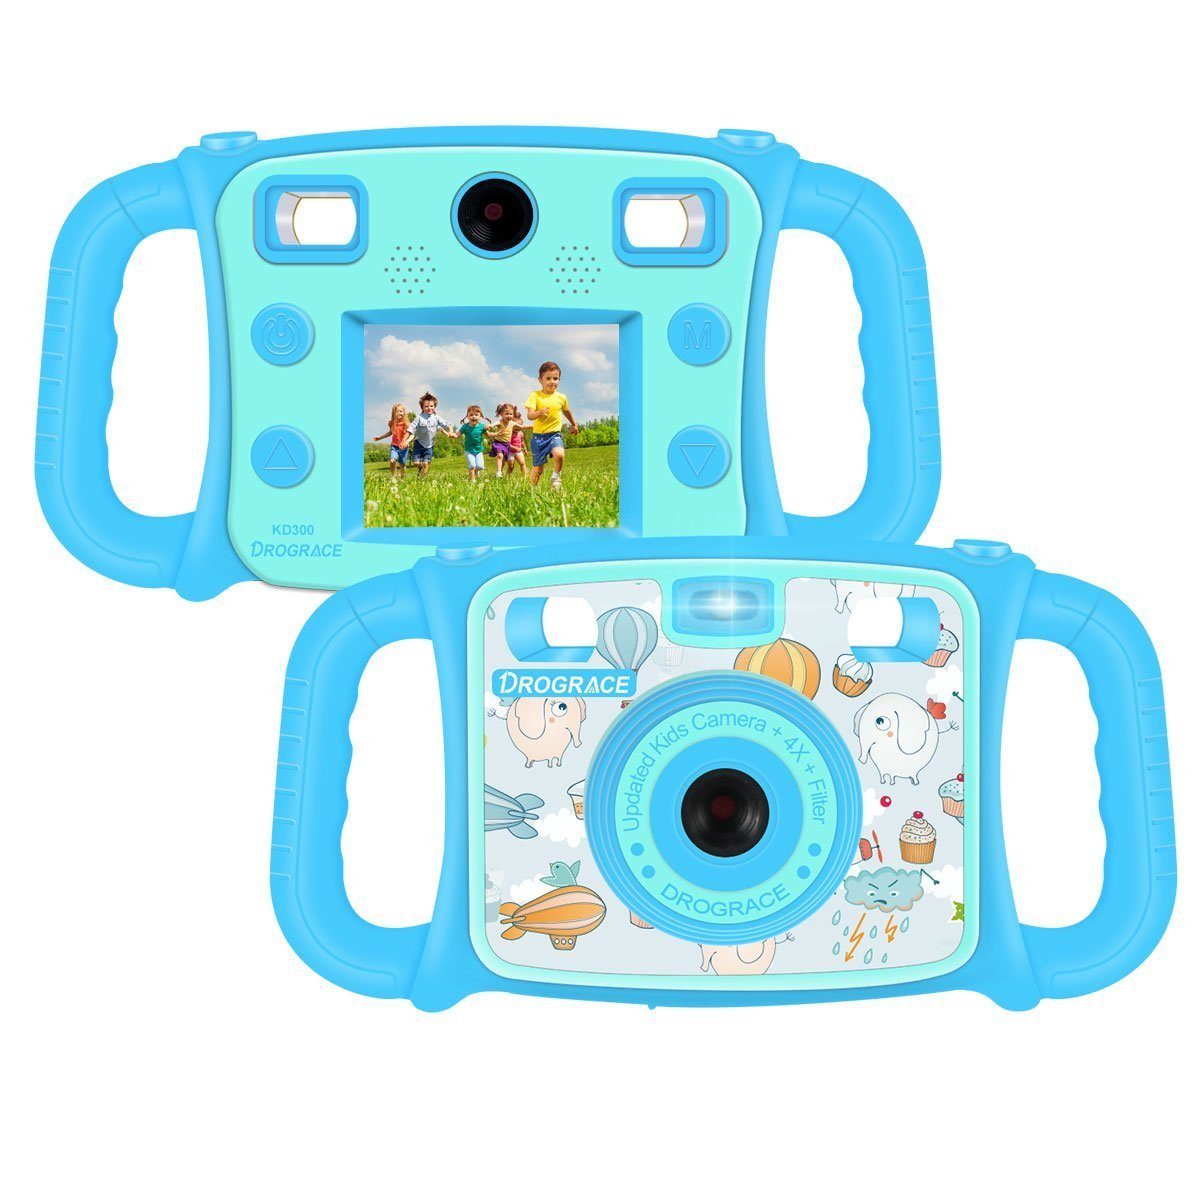 """Prograce Kids Camera Dual Selfie Camera 1080P HD Video Recorder Digital Action Camera Camcorder for Boys Girls Gifts 2.0"""" LCD Screen with 4X Digital Zoom and Funny Game(Blue) by PROGRACE (Image #1)"""